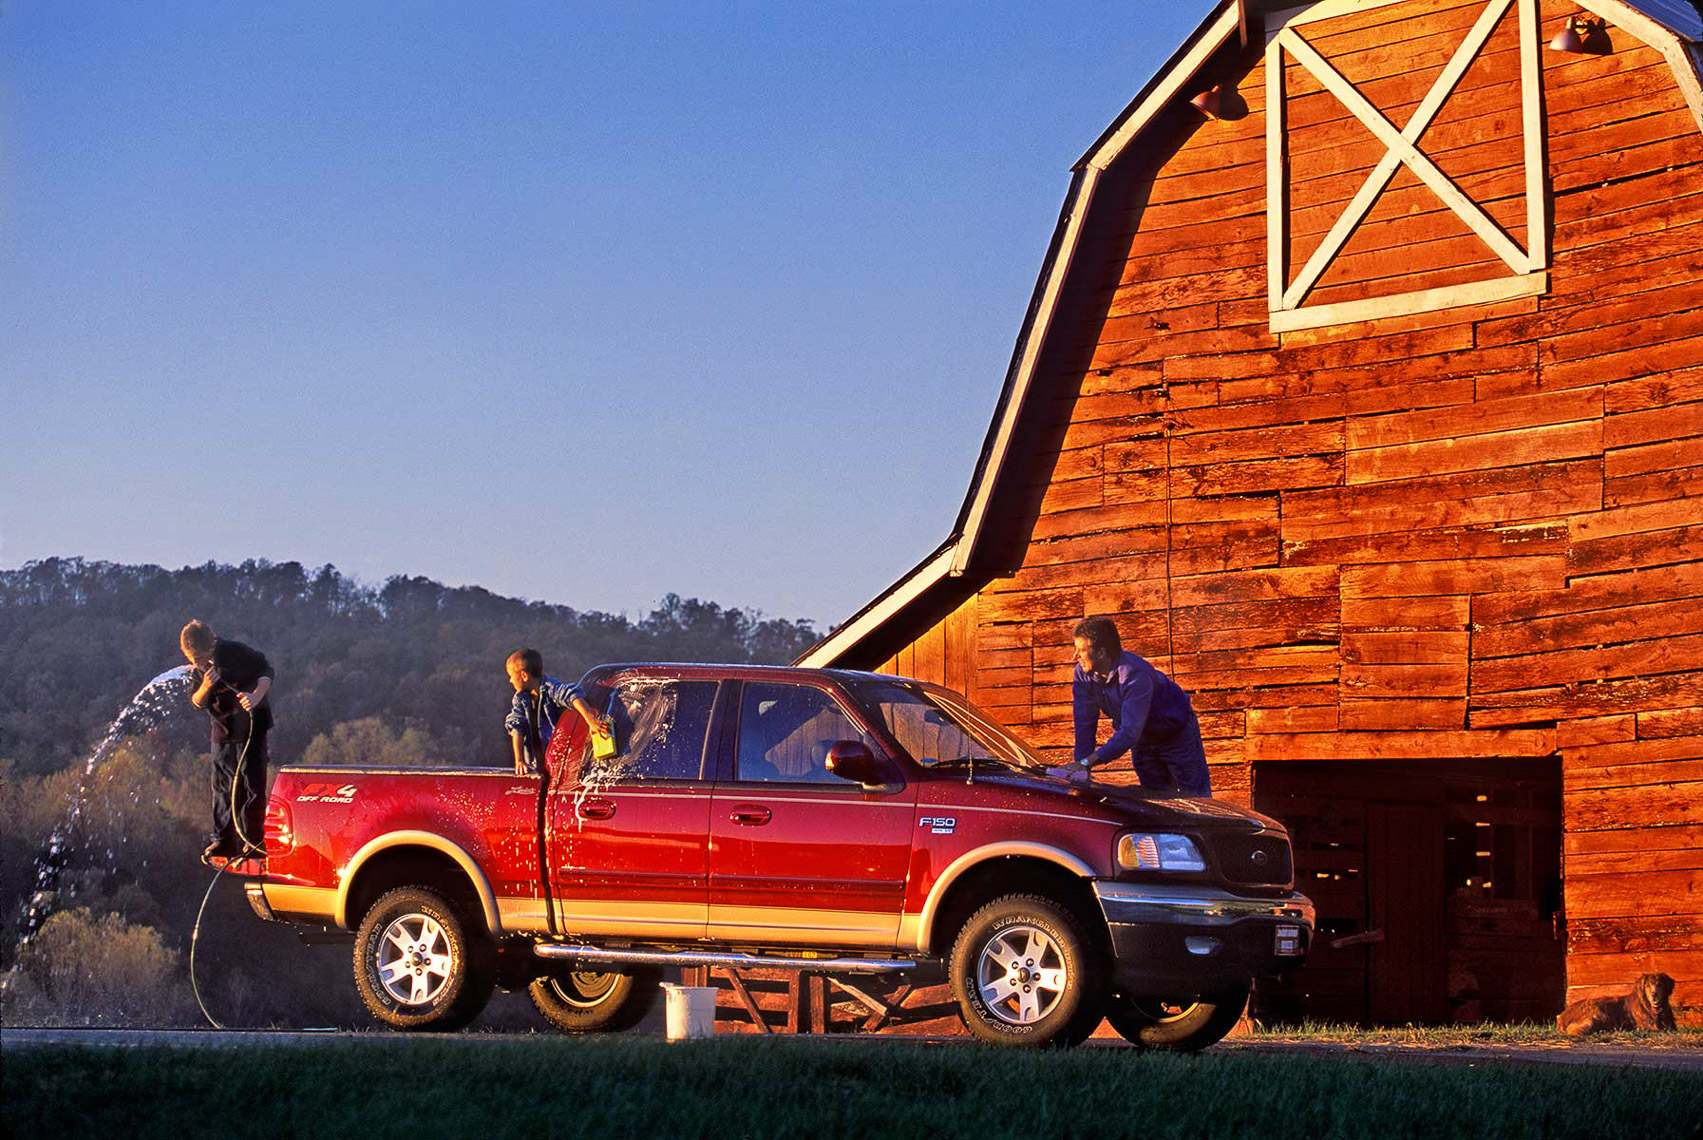 04-Truck-and-red-barn-UCB